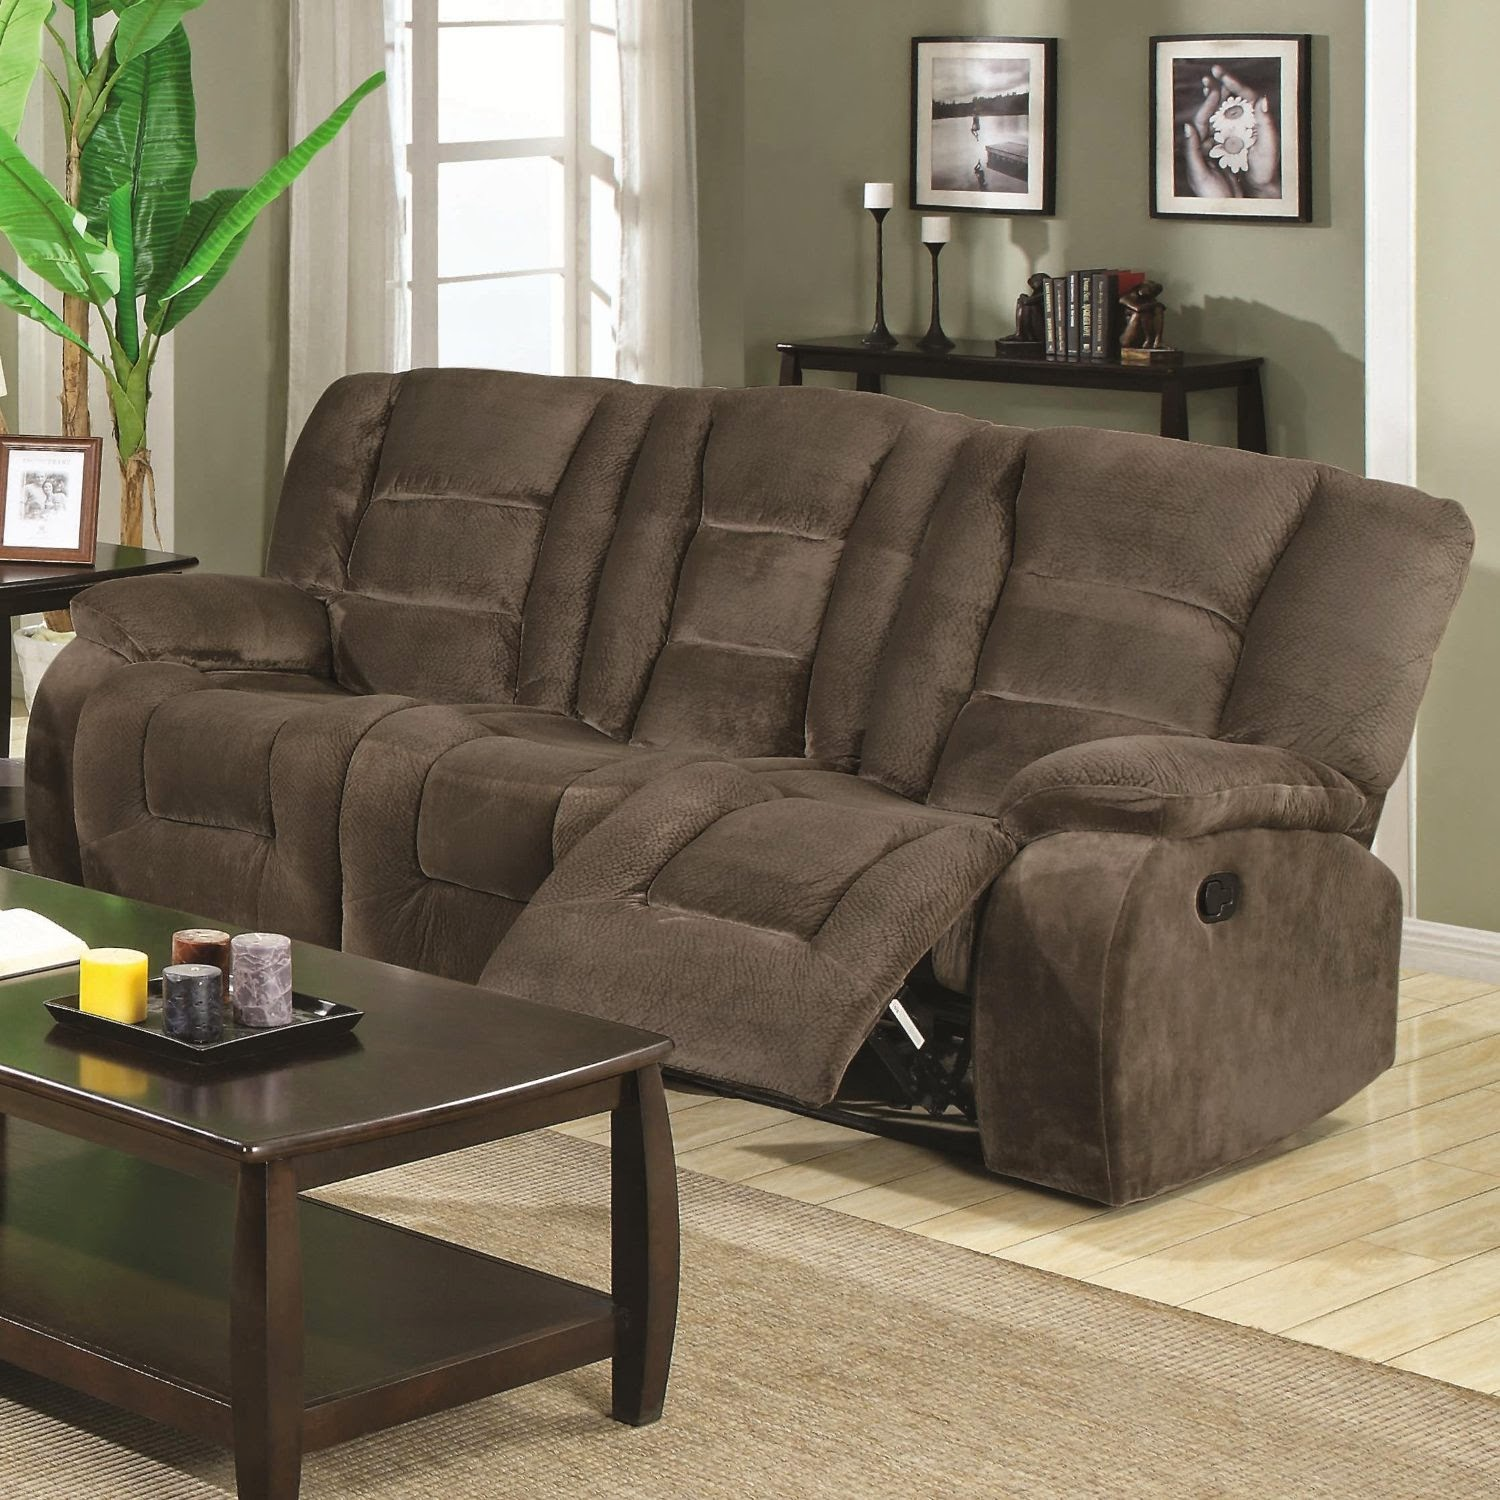 Coaster Home Brown Siegefabric Recliner Sofas